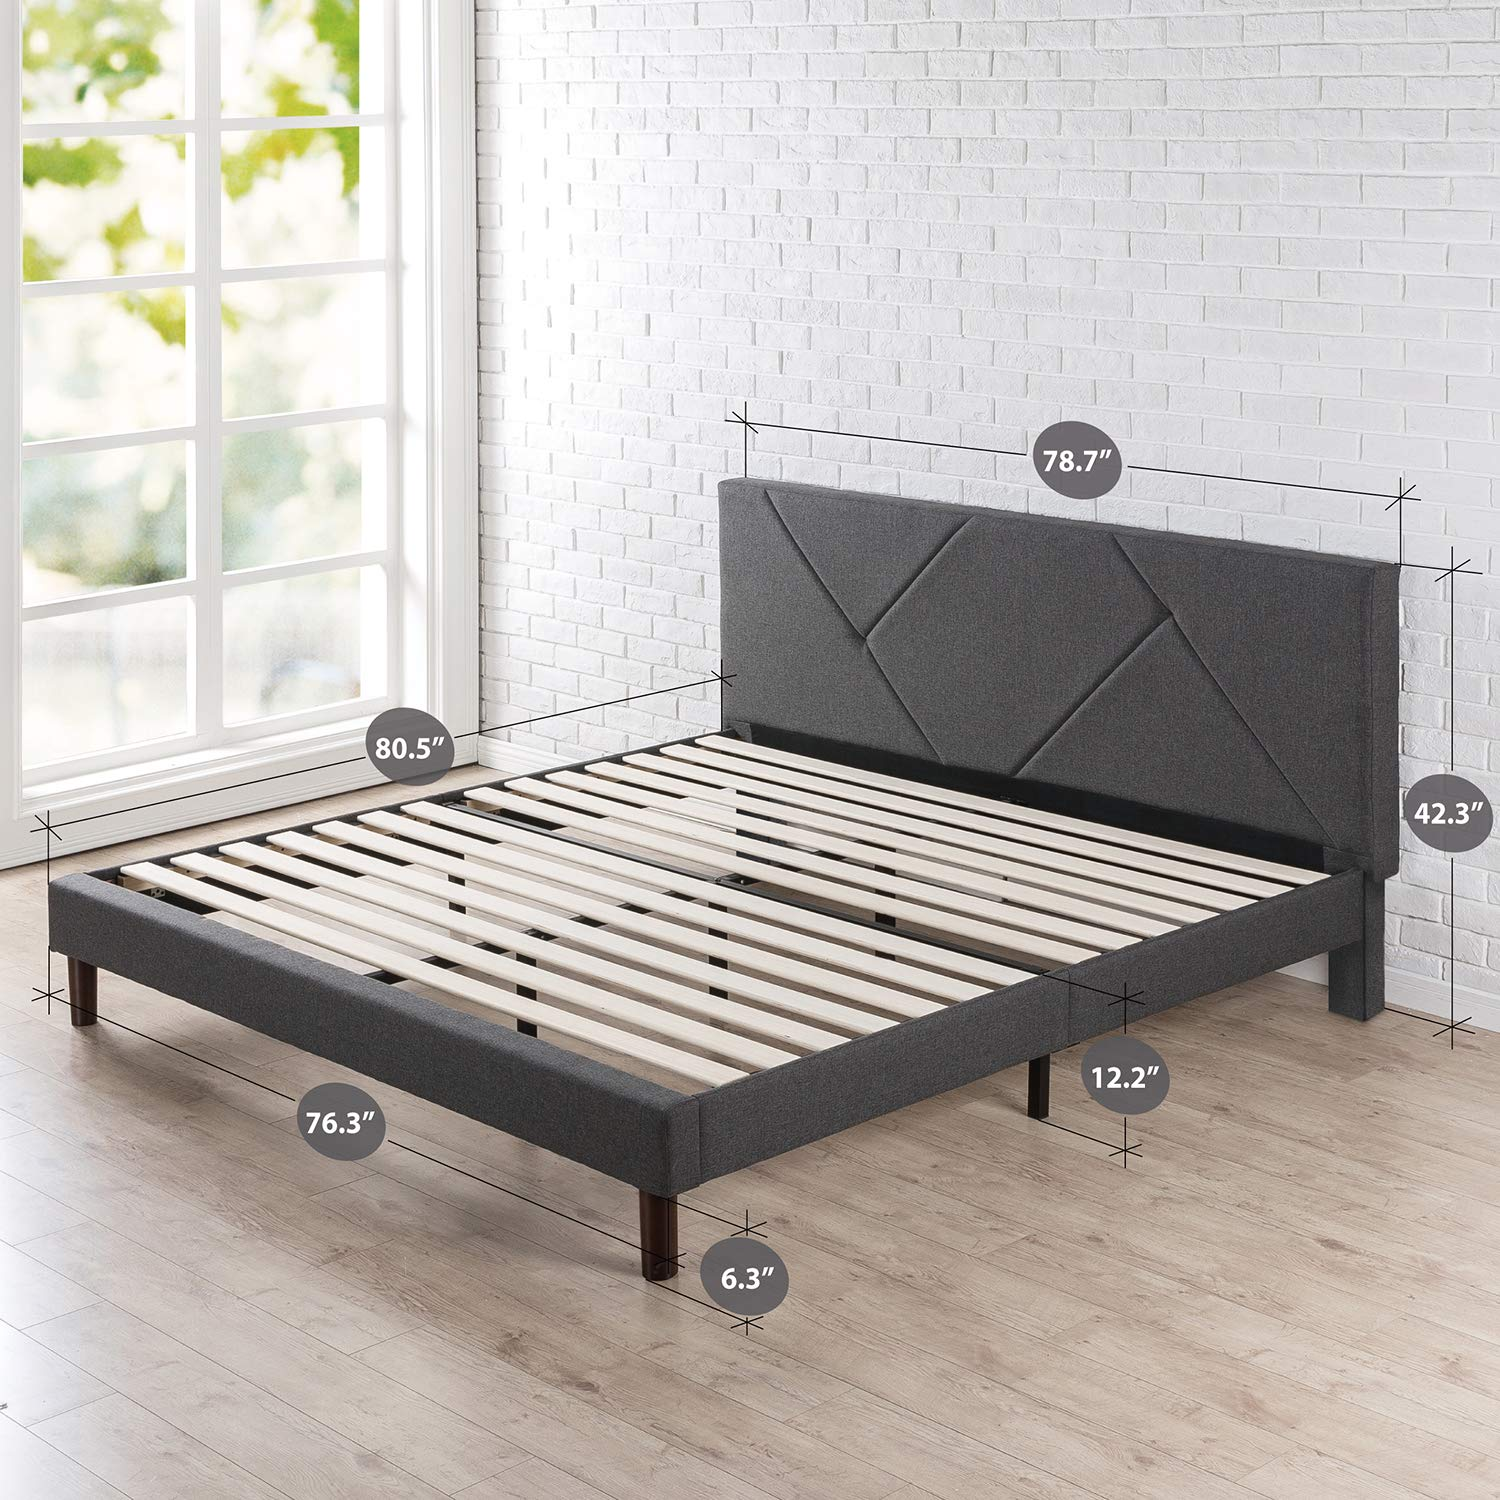 Zinus Upholstered Geometric Paneled Platform Bed / Mattress Foundation / Easy Assembly / Strong Wood Slat Support, King by Zinus (Image #2)